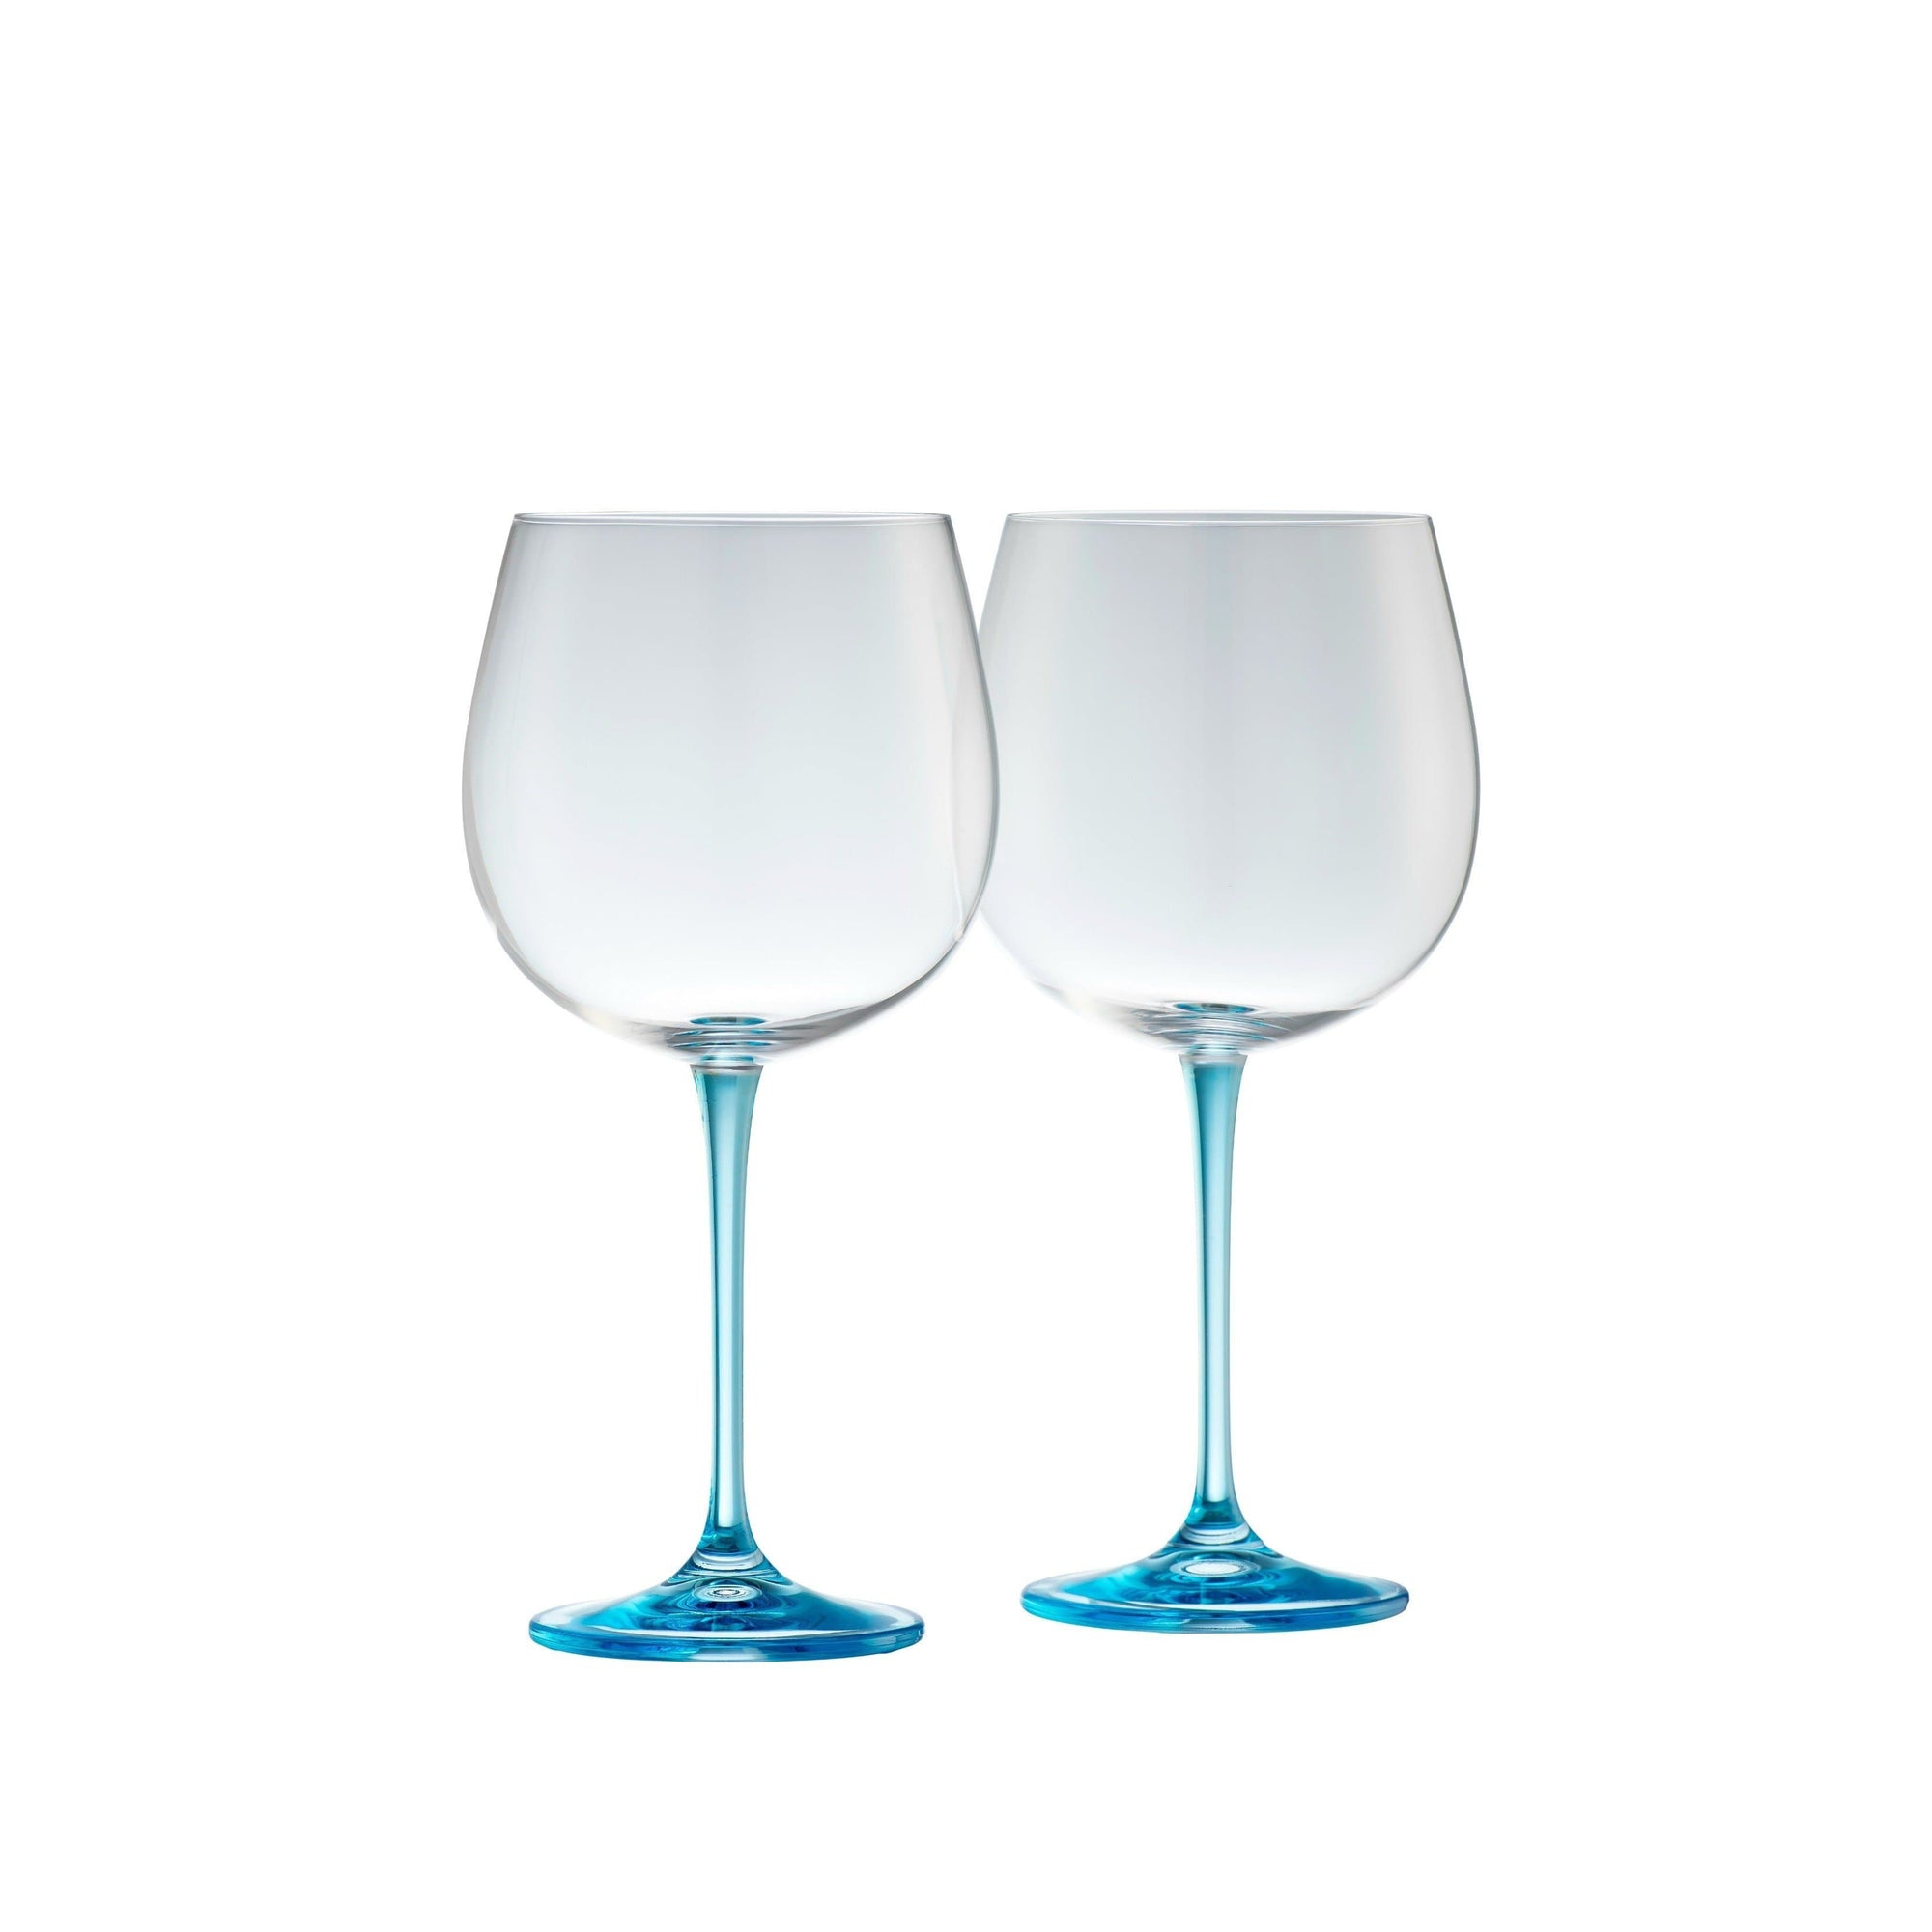 Gin & Tonic Glasses - Blue